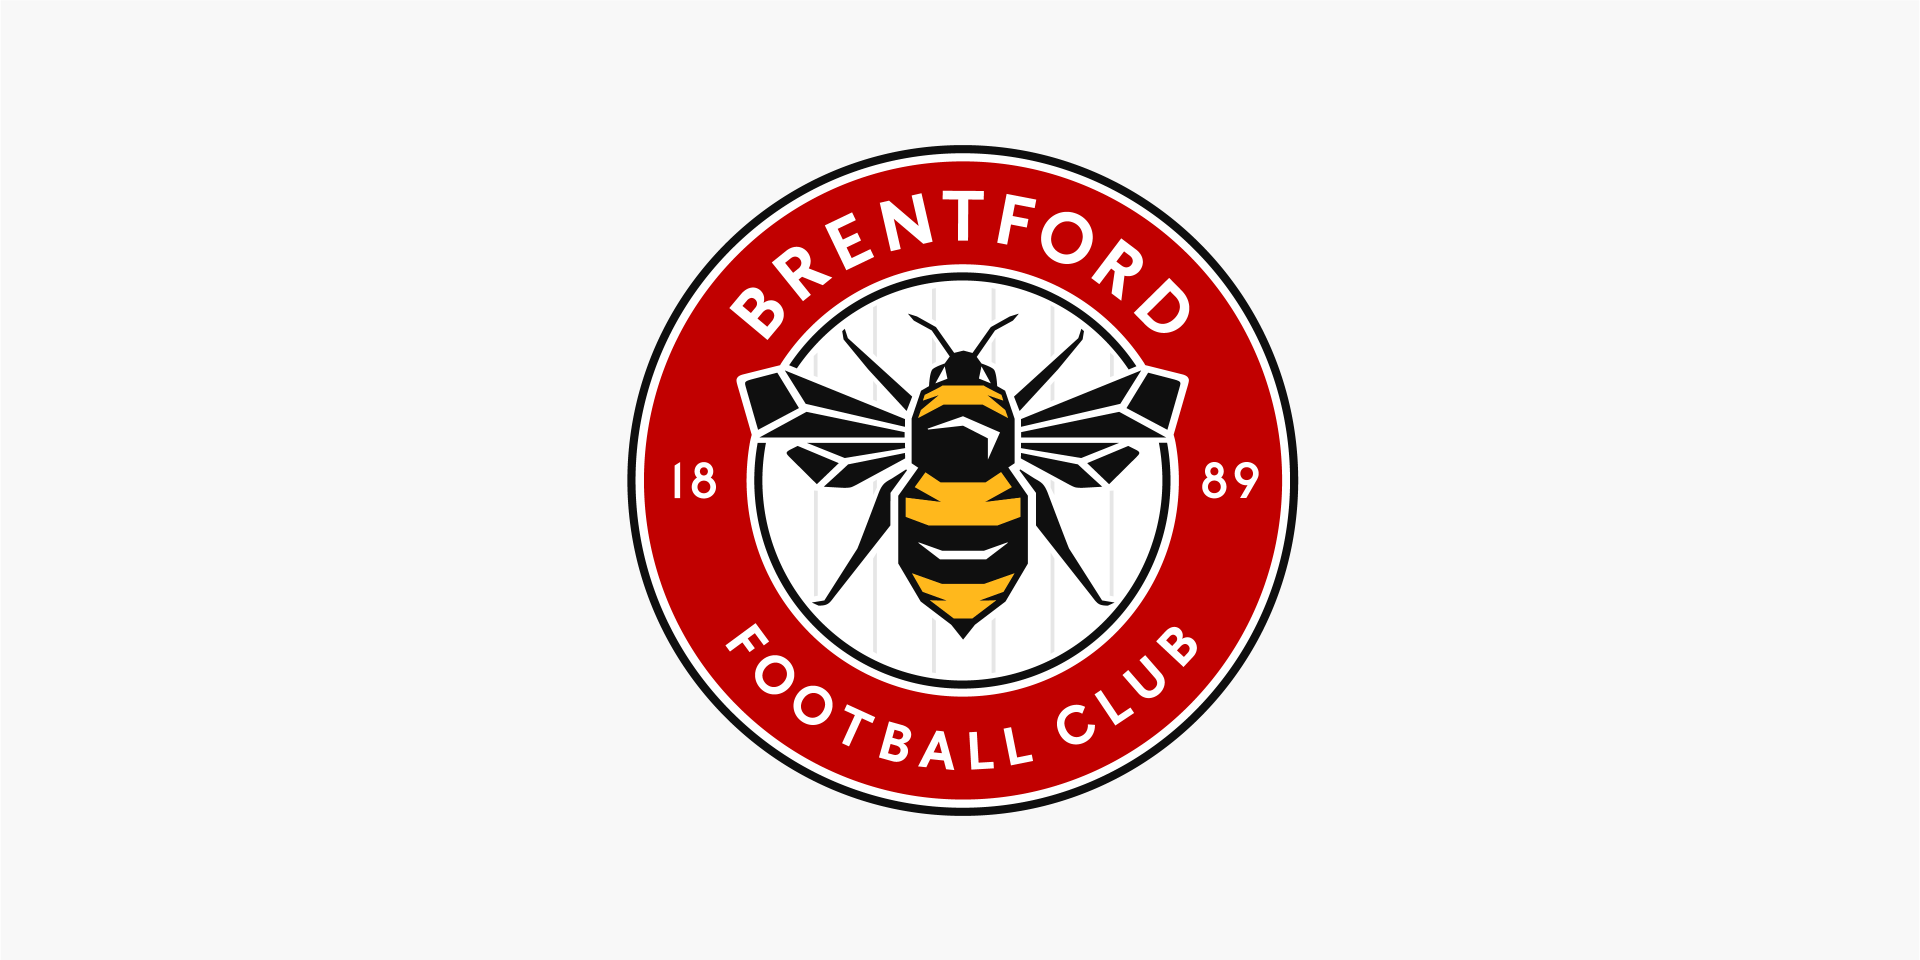 http://crest.brentfordfc.co.uk/sites/default/files/styles/1920x/public/bfc_crestlauch_3840x1920.png